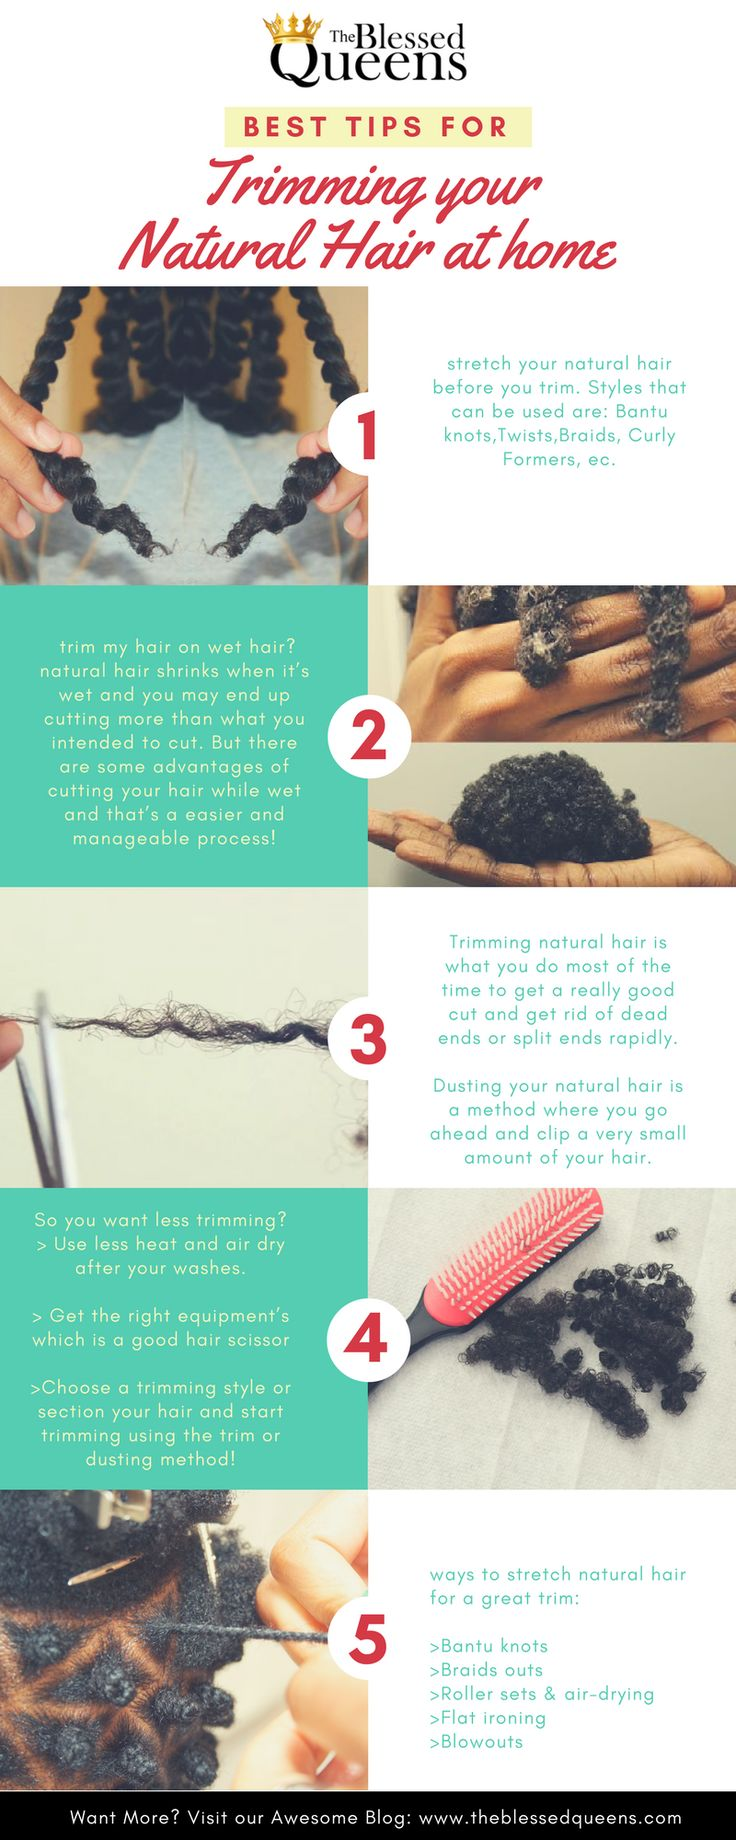 Have you ever wondered what are the Best Cutting Natural Hair Tips for Trim Hair at Home? 10 fundamentals on learning how to trim your natural hair easily!